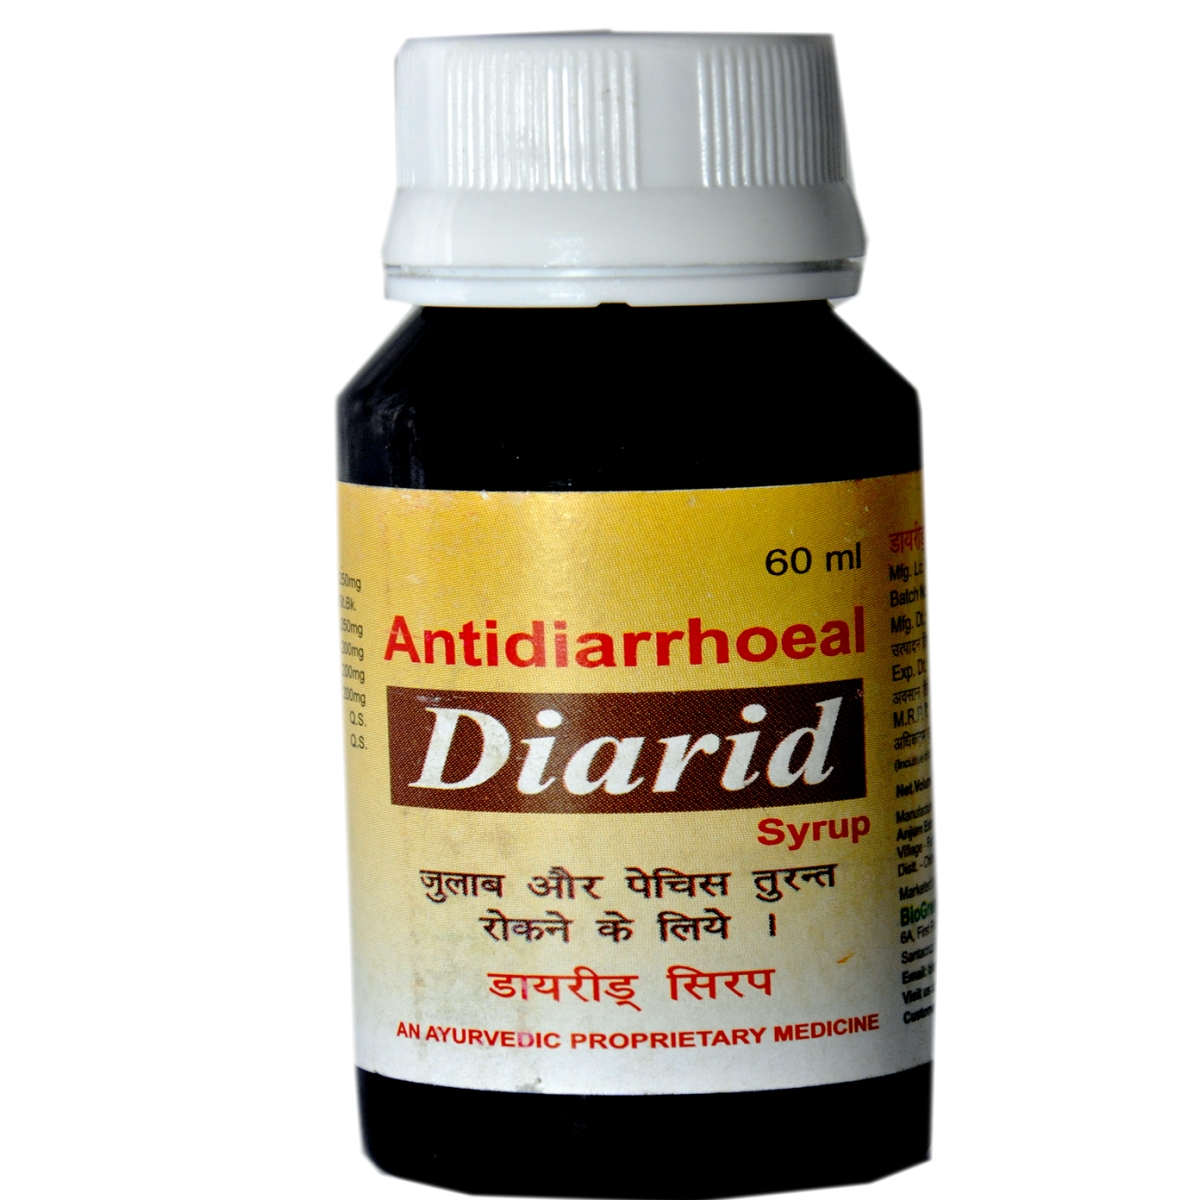 Diarid Syrup In Jalor